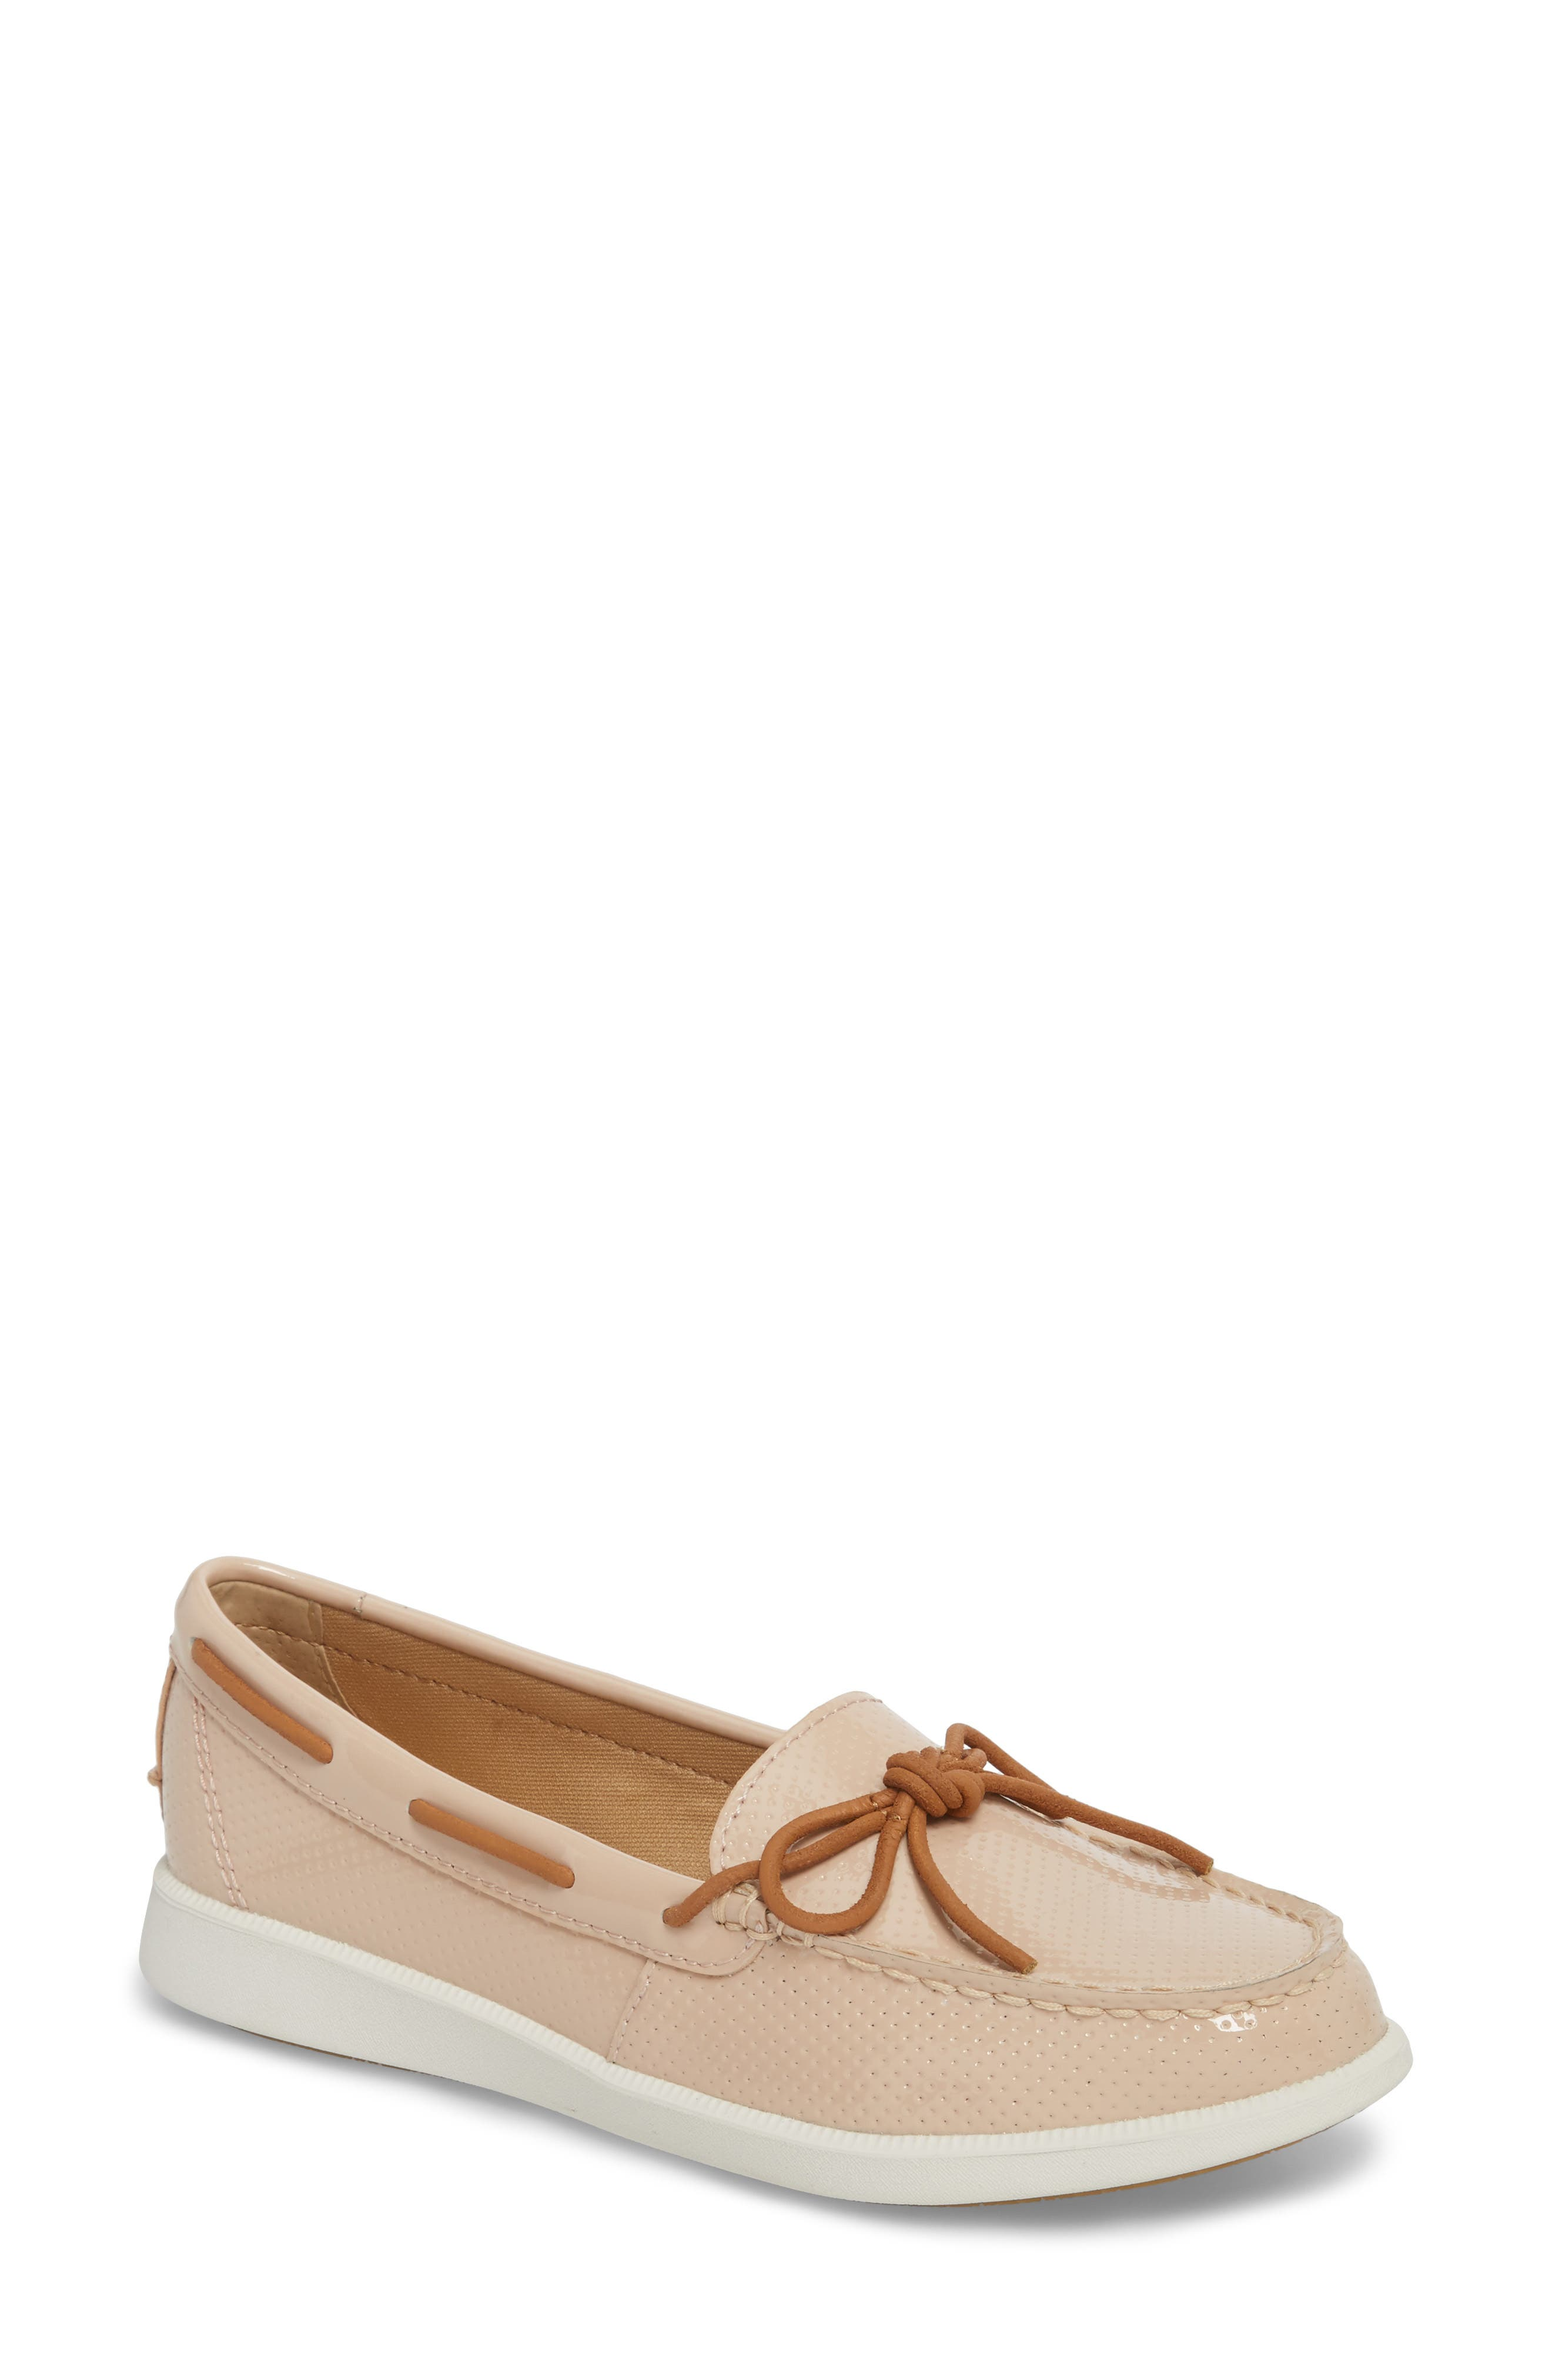 Sperry Oasis Boat Shoe (Women)